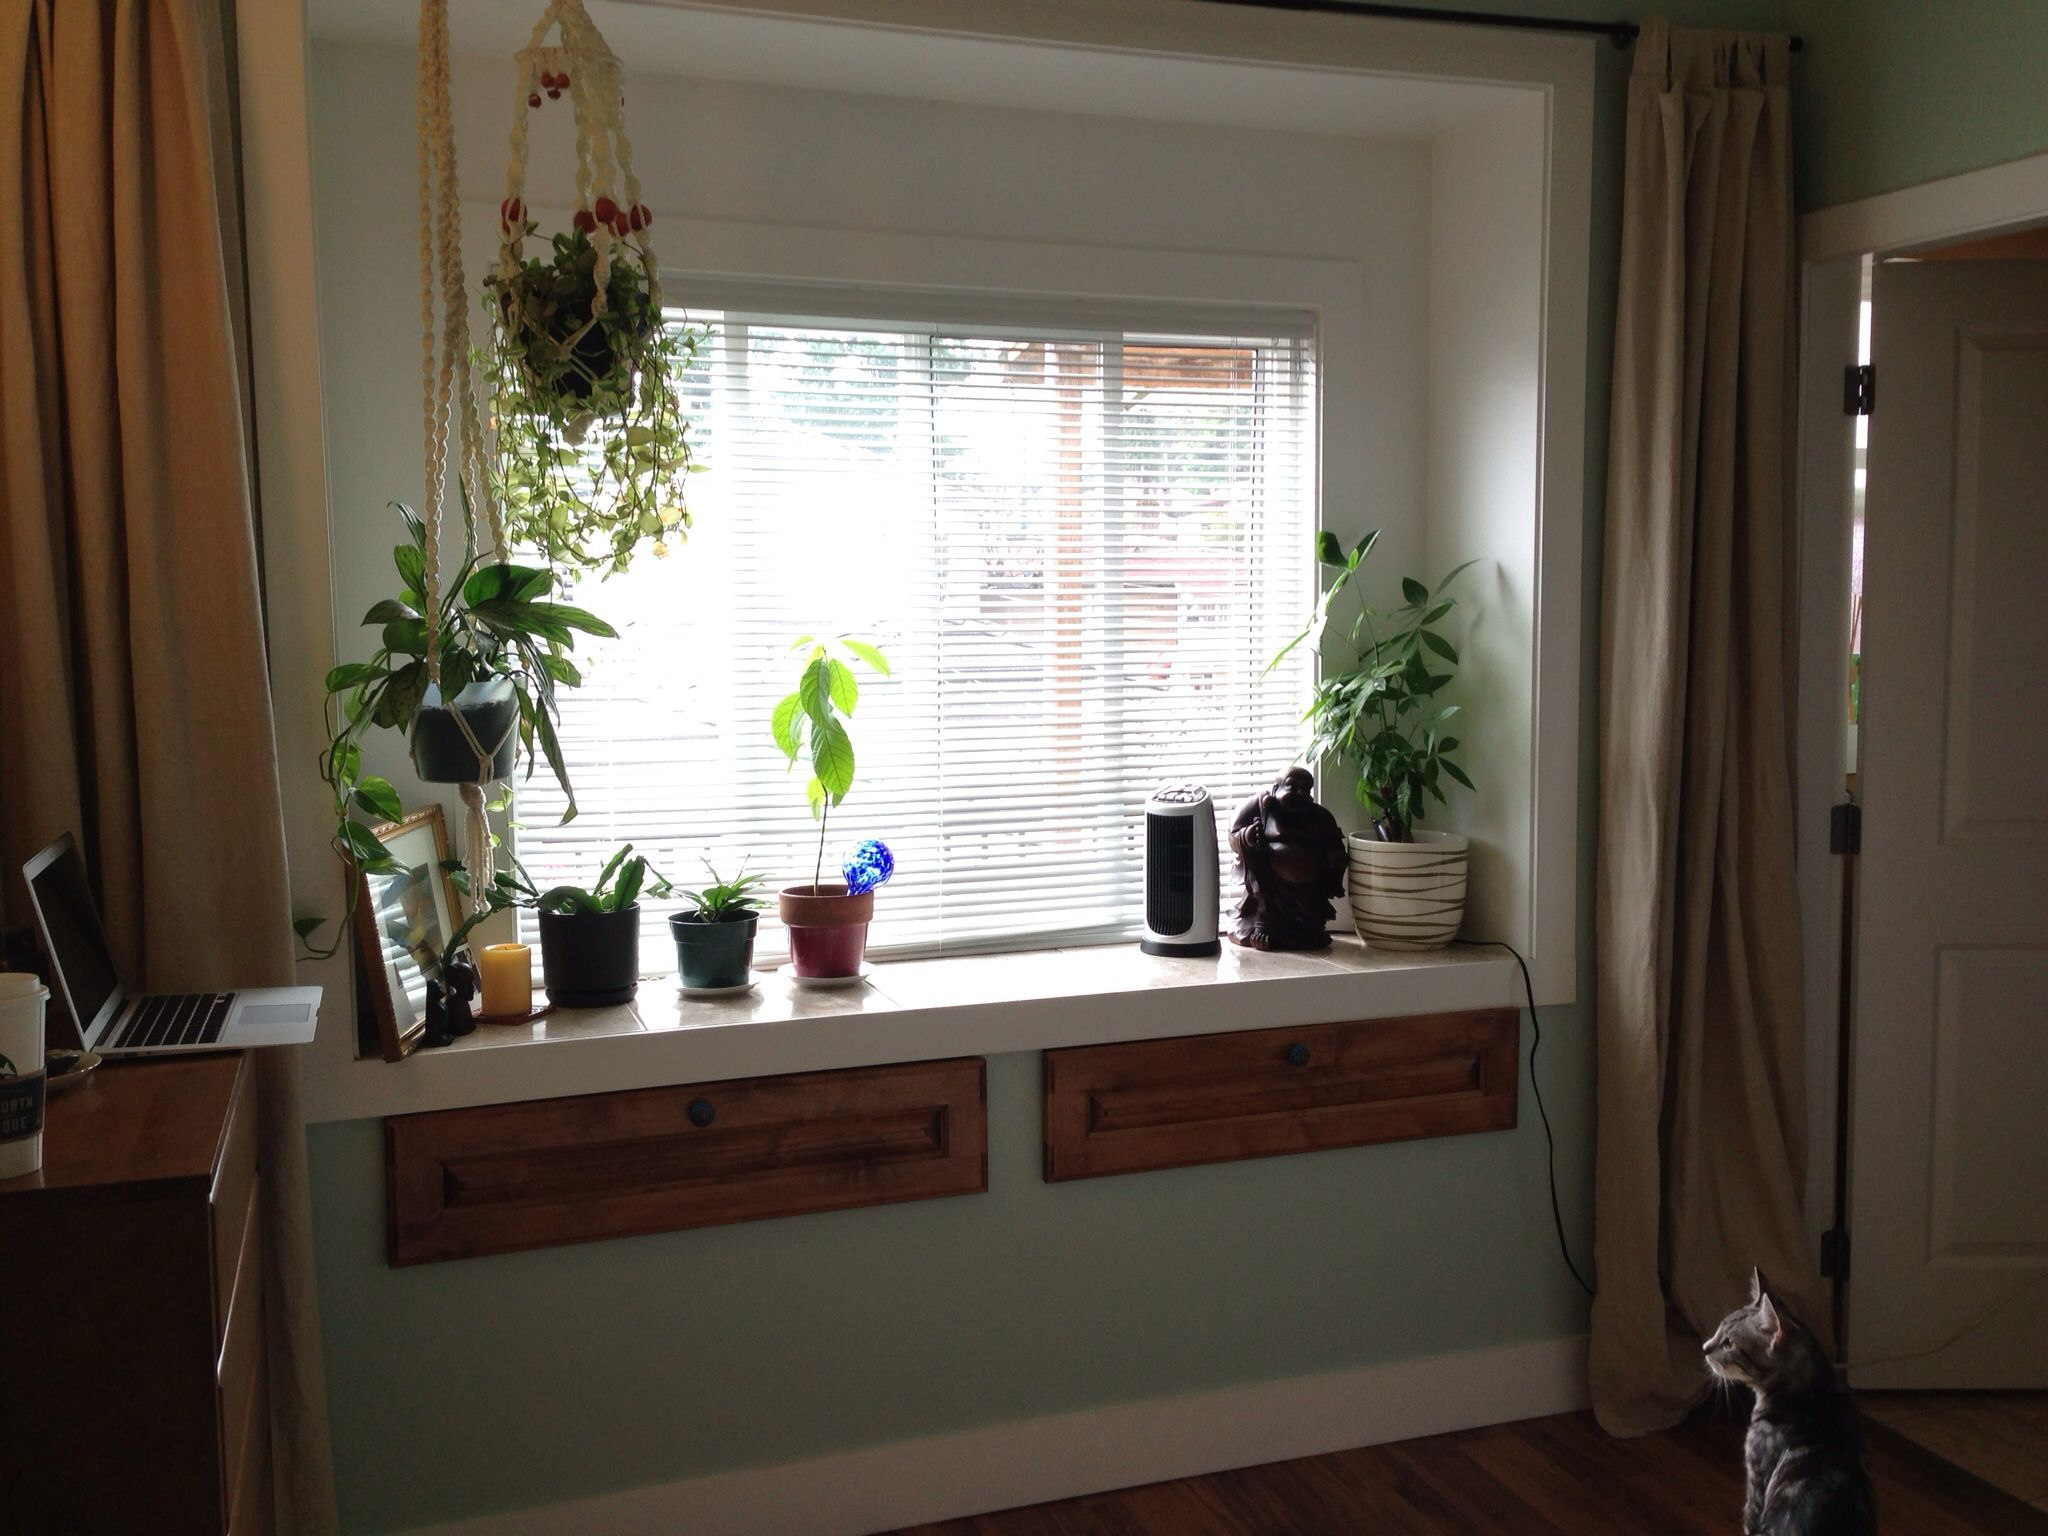 Bay Window With Hanging Plants, Relax